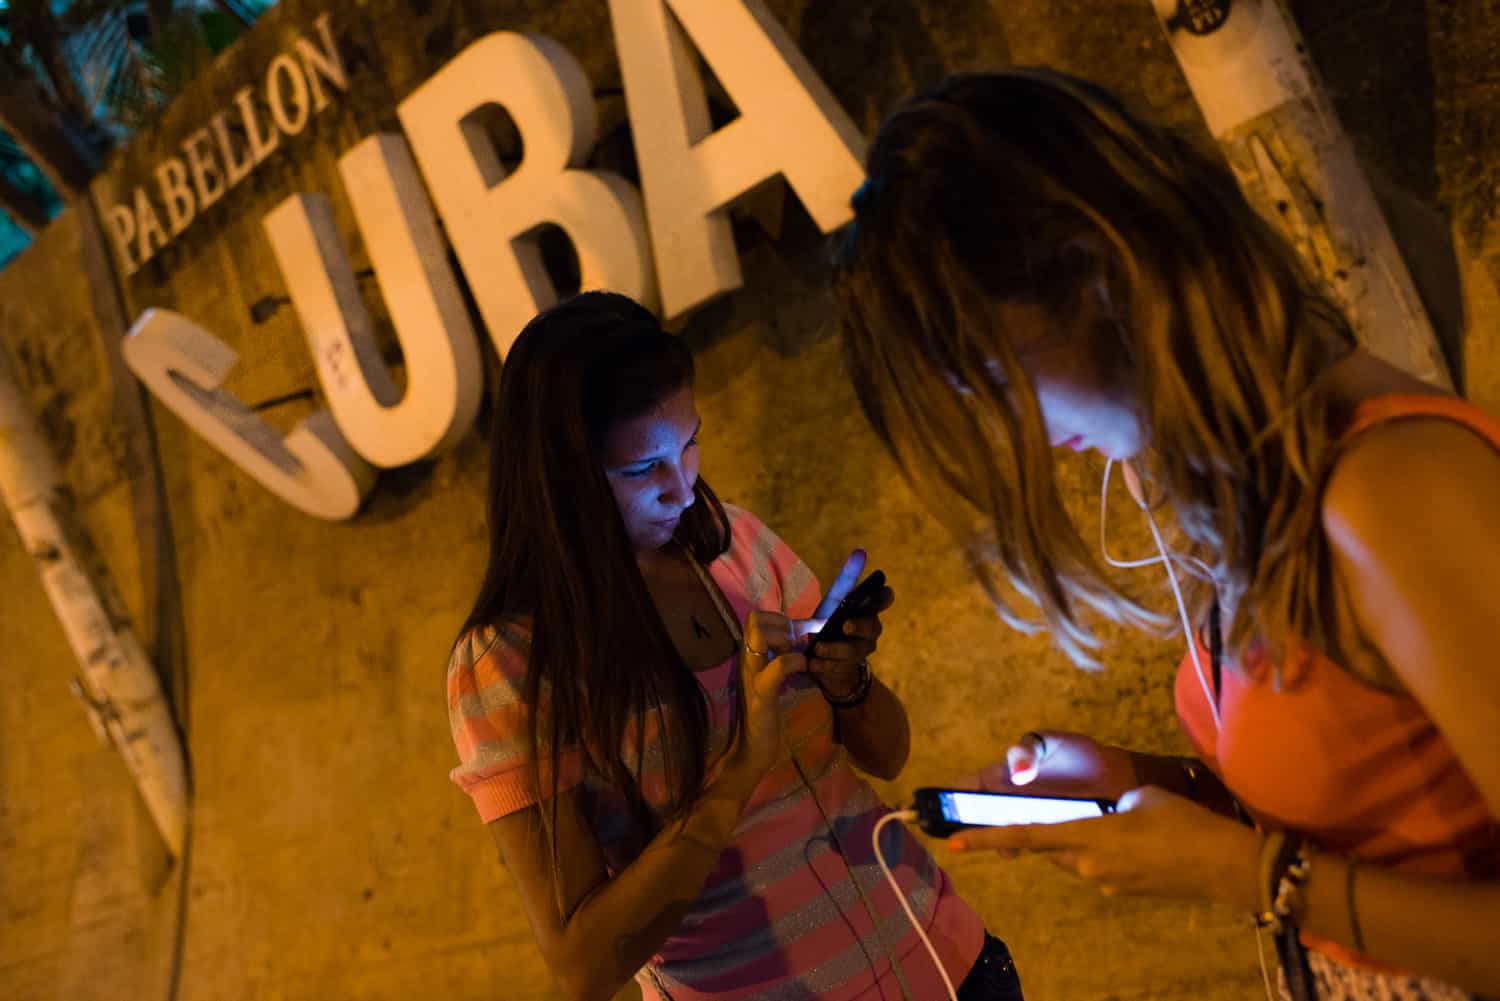 Using a new internet hotspot in Havana, Carolina Baez, 16, left, uses Facebook as her friend, Lara Gonzales, 16, video chats with an aunt in Miami on August 3. The recent addition of public WiFi hotspots has made the internet much more affordable in Cuba.